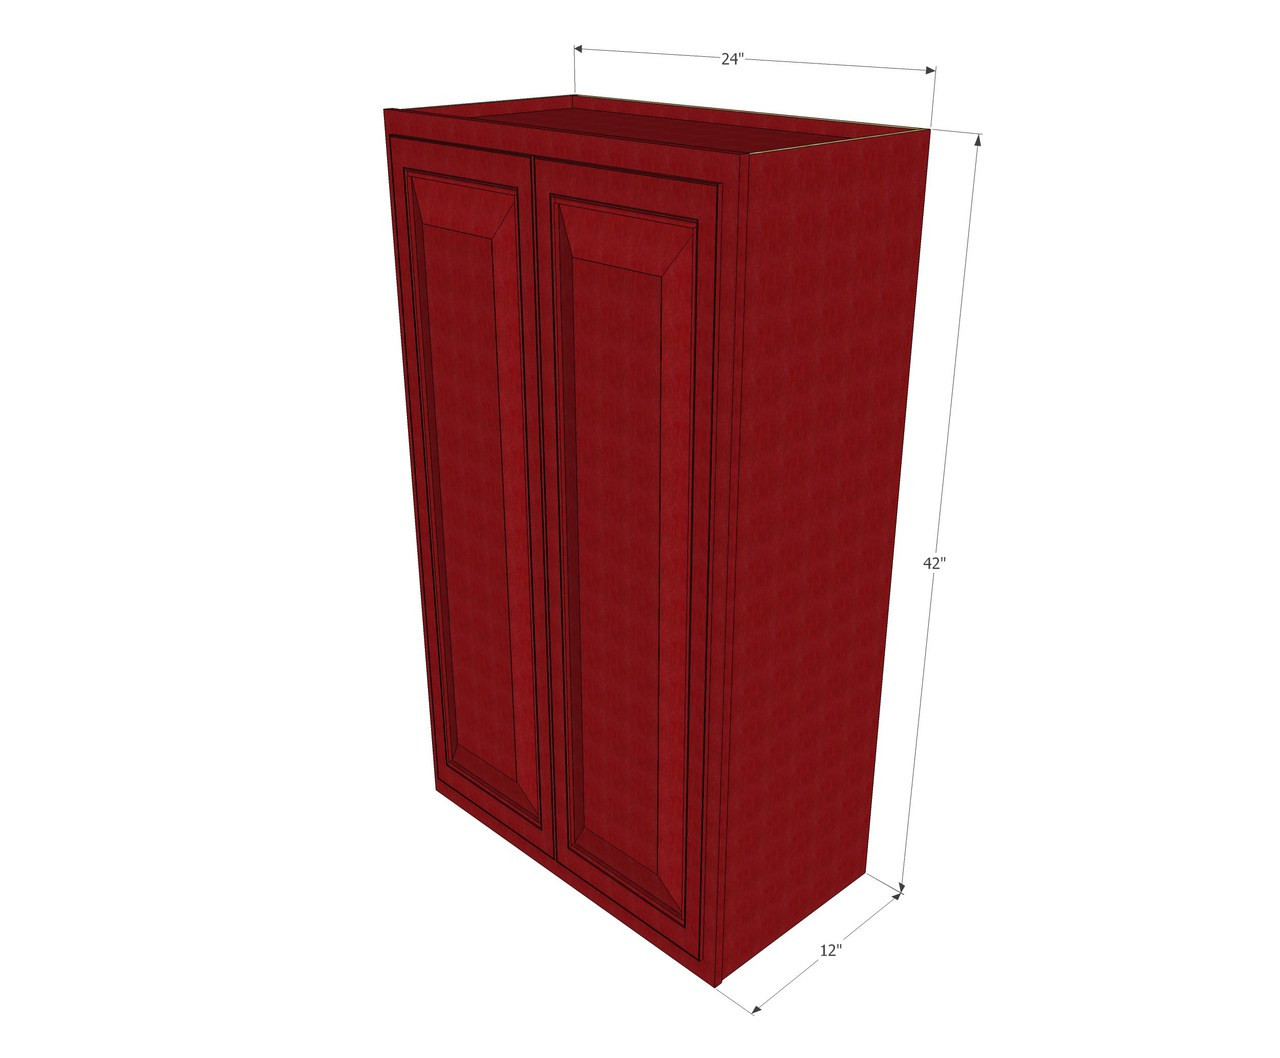 Large double door grand reserve cherry wall cabinet 24 for Kitchen cabinets 42 inches high